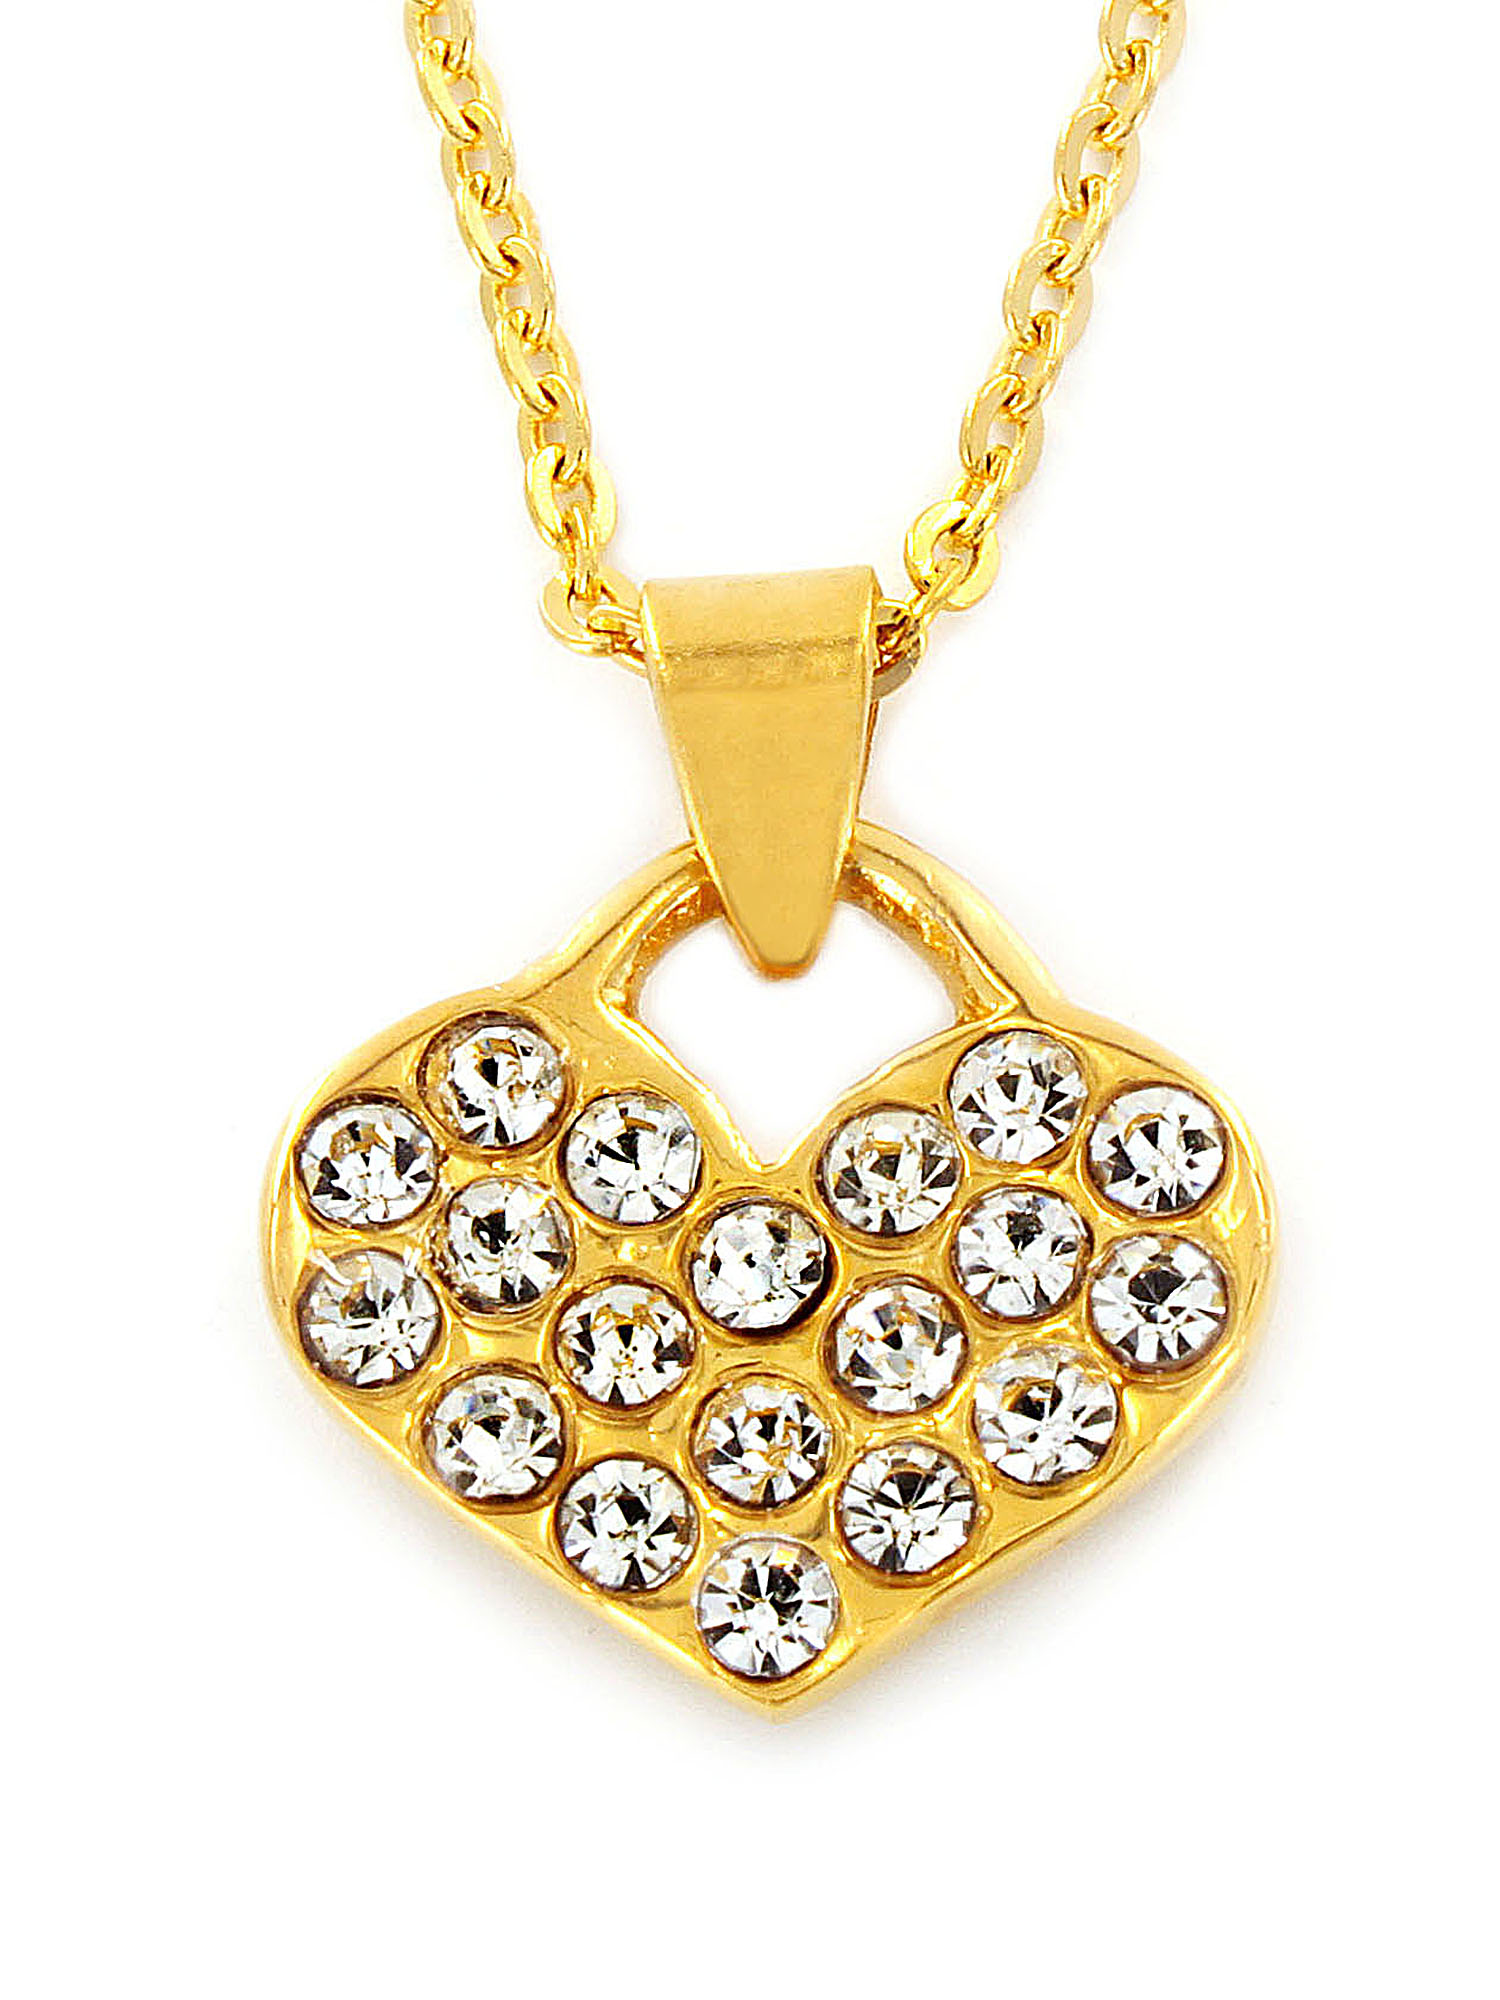 Gold Plated Stainless Steel Heart CZs Pendant Necklace